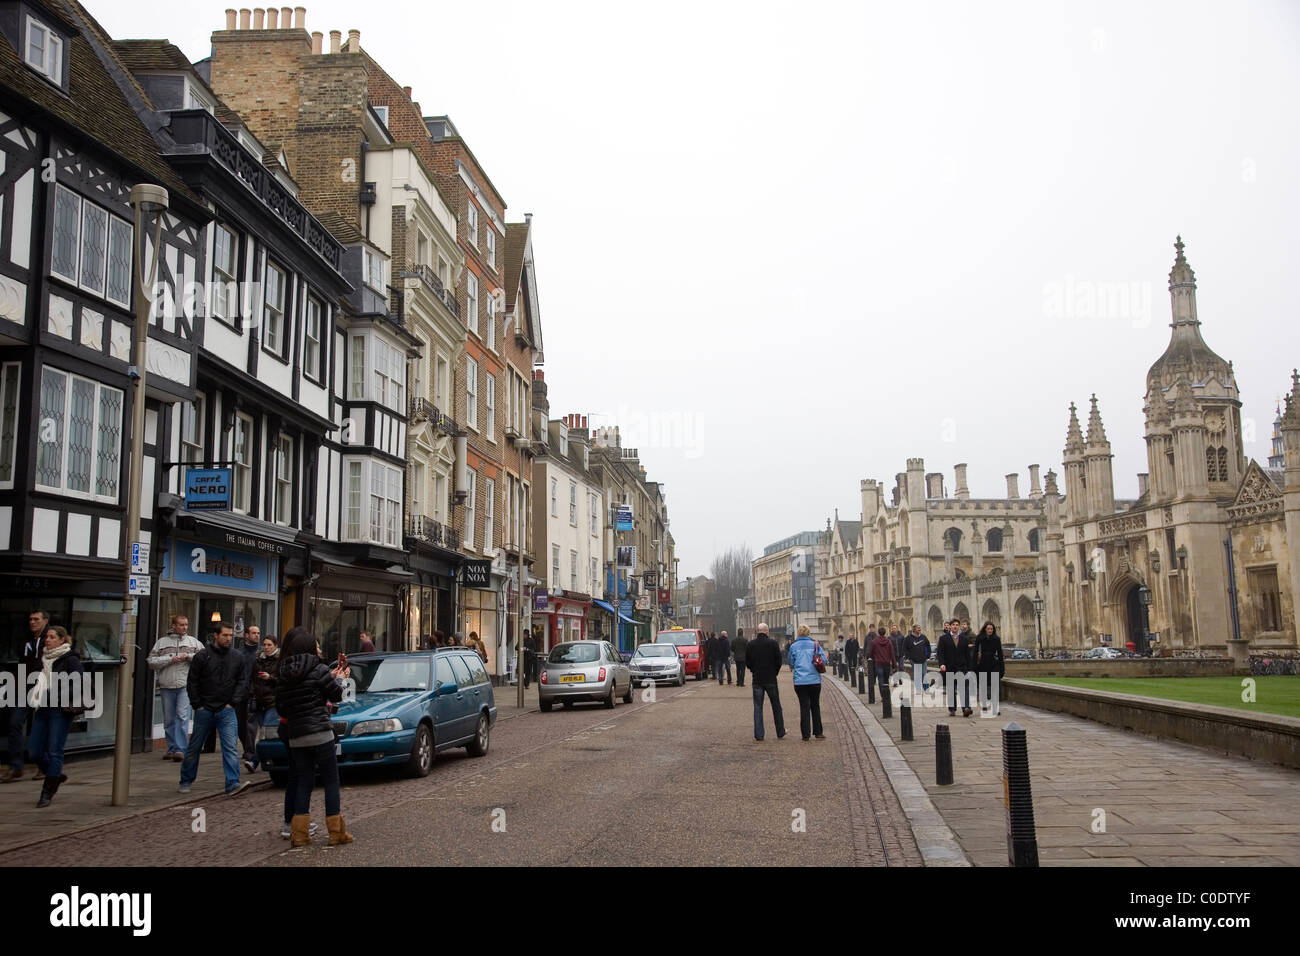 Kings Parade shops with Kings College Gatehouse to the right - Stock Image